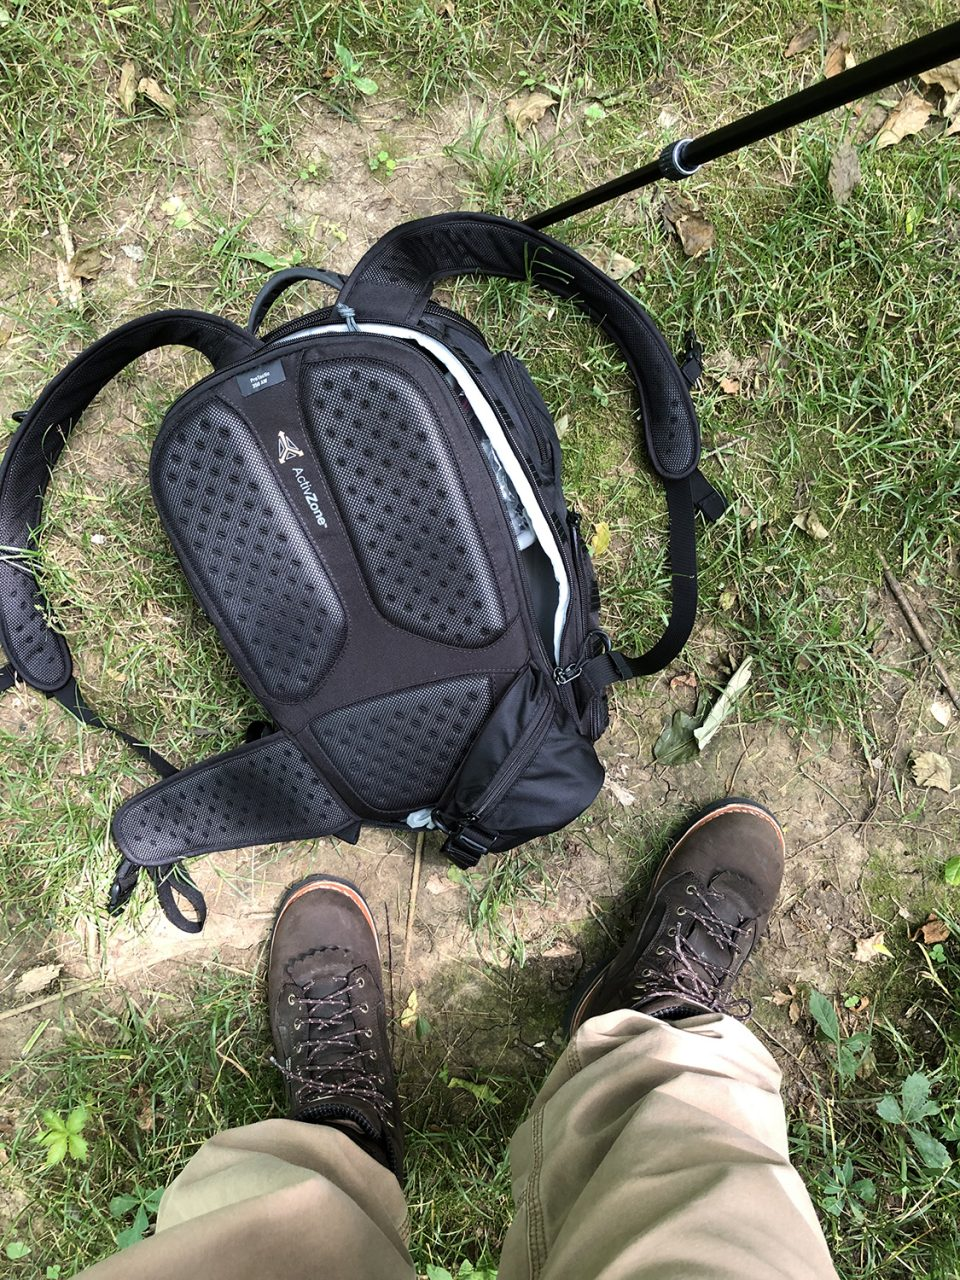 I had my total photo geek look going on for the hike, with pants bloused into my Redwing Irish Setter boots to help deter ticks